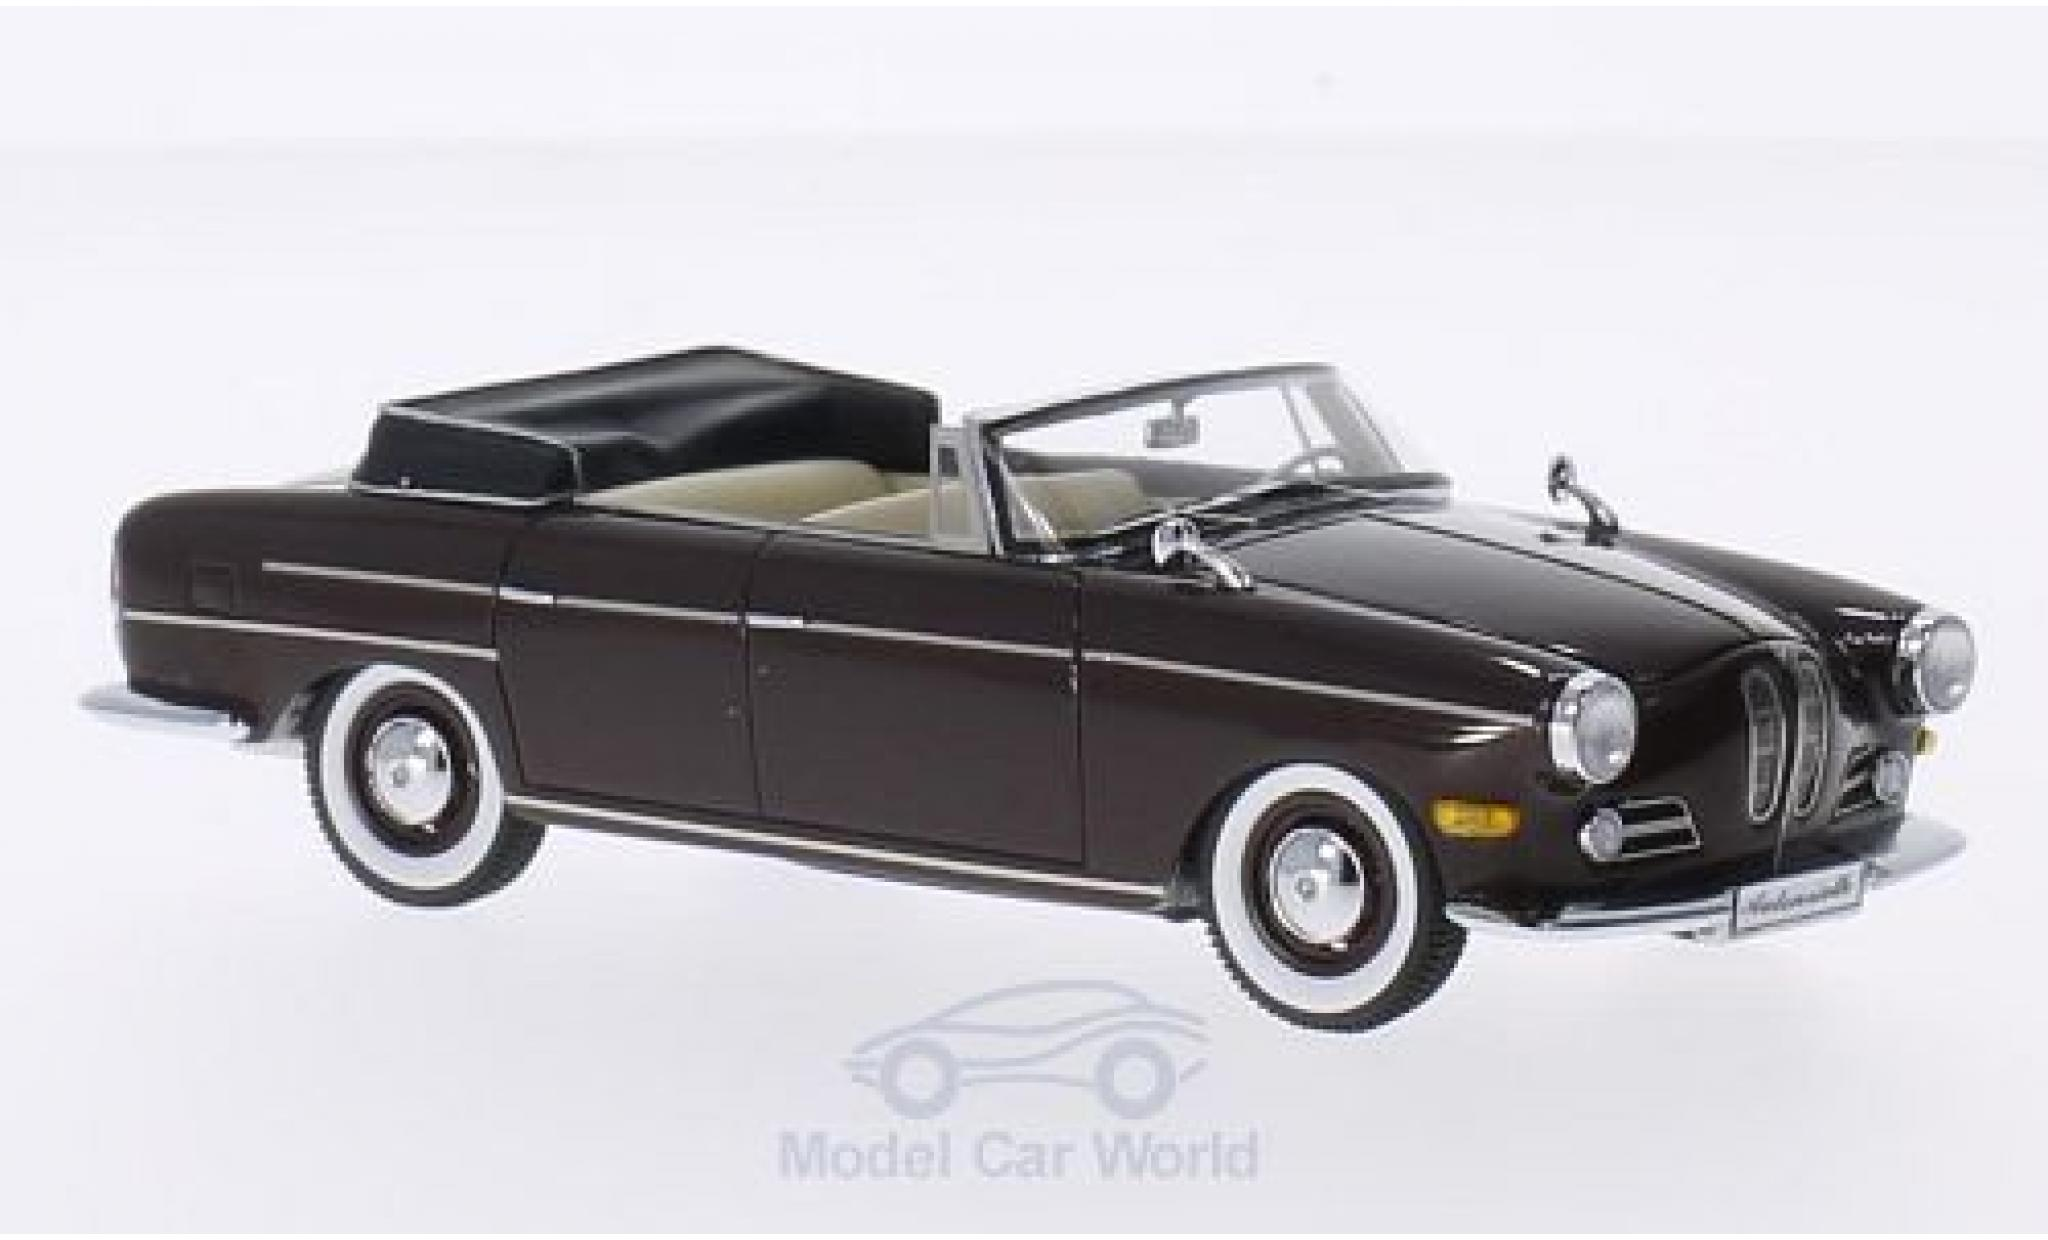 Bmw 3200 1/43 Matrix BMW Super Cabriolet dunkelmarron 1959 by Autenrieth